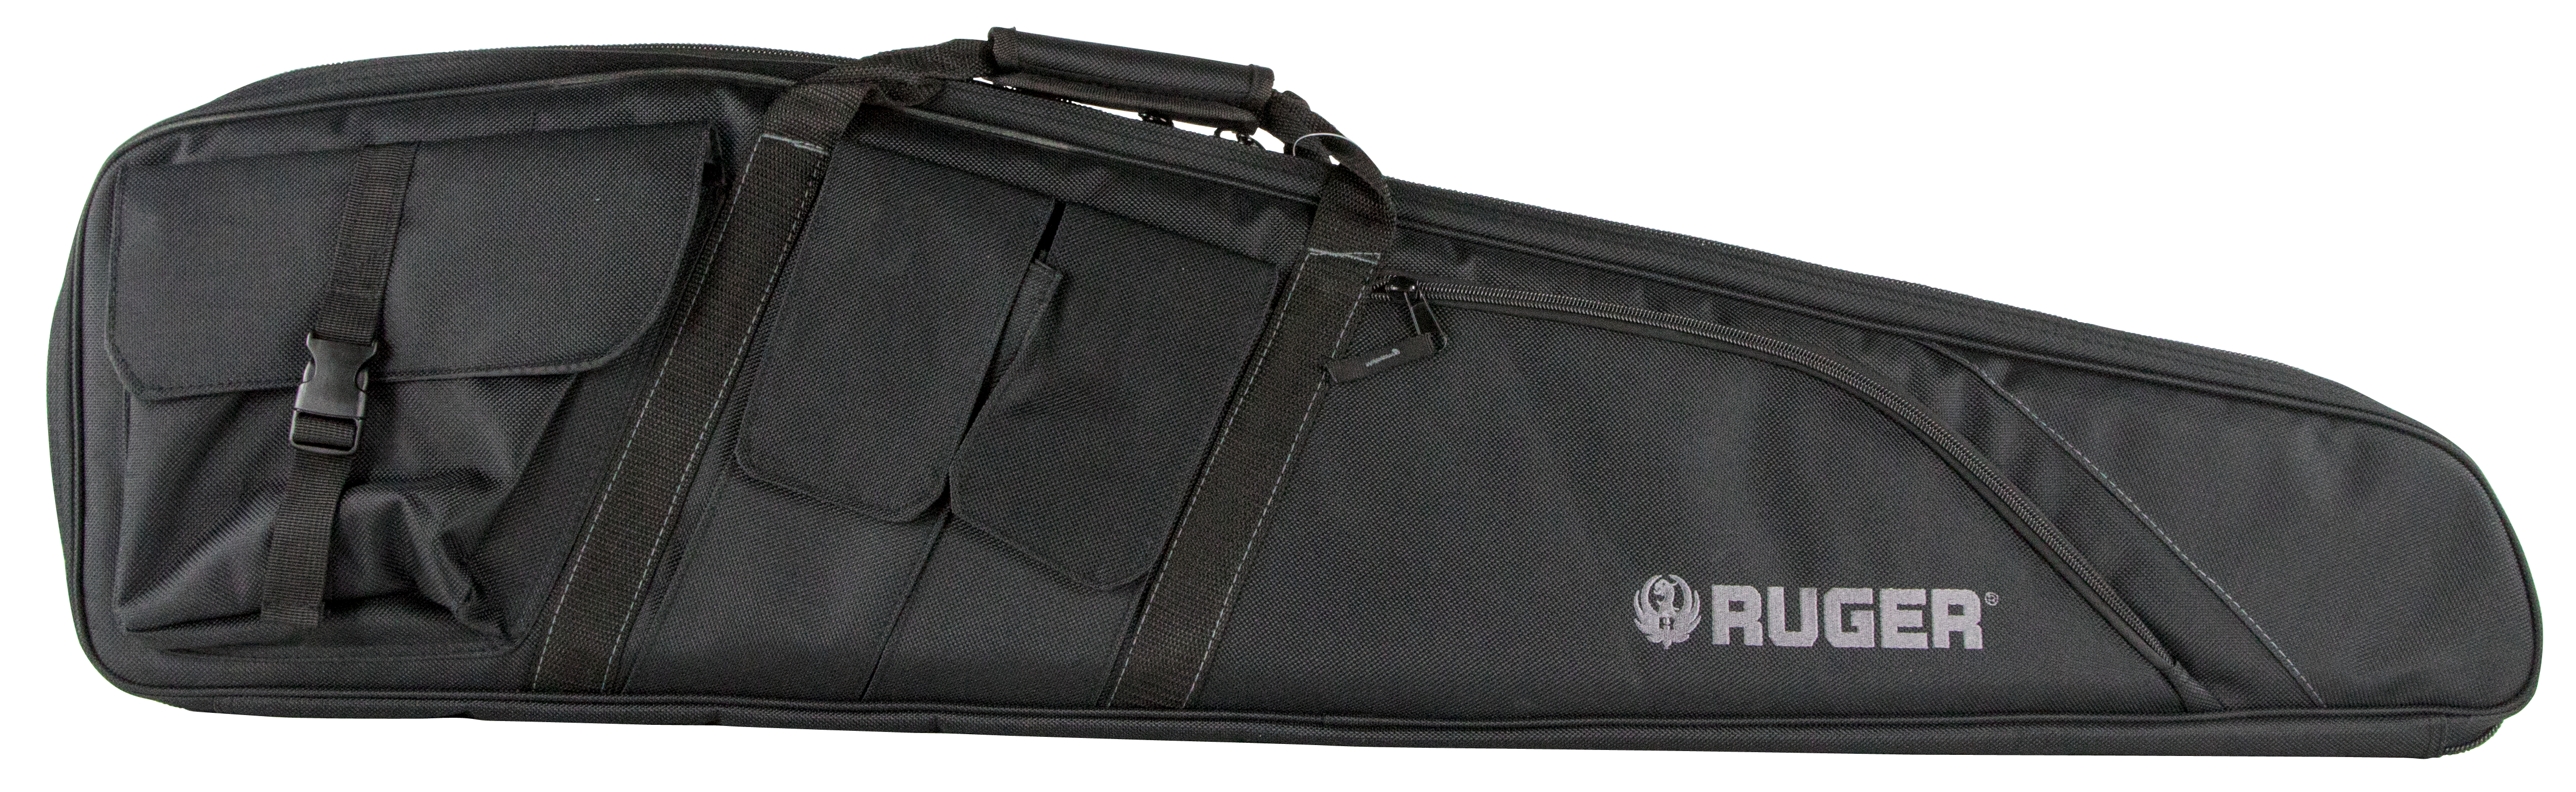 Ruger Defiance Tactical Soft Rifle Case 42